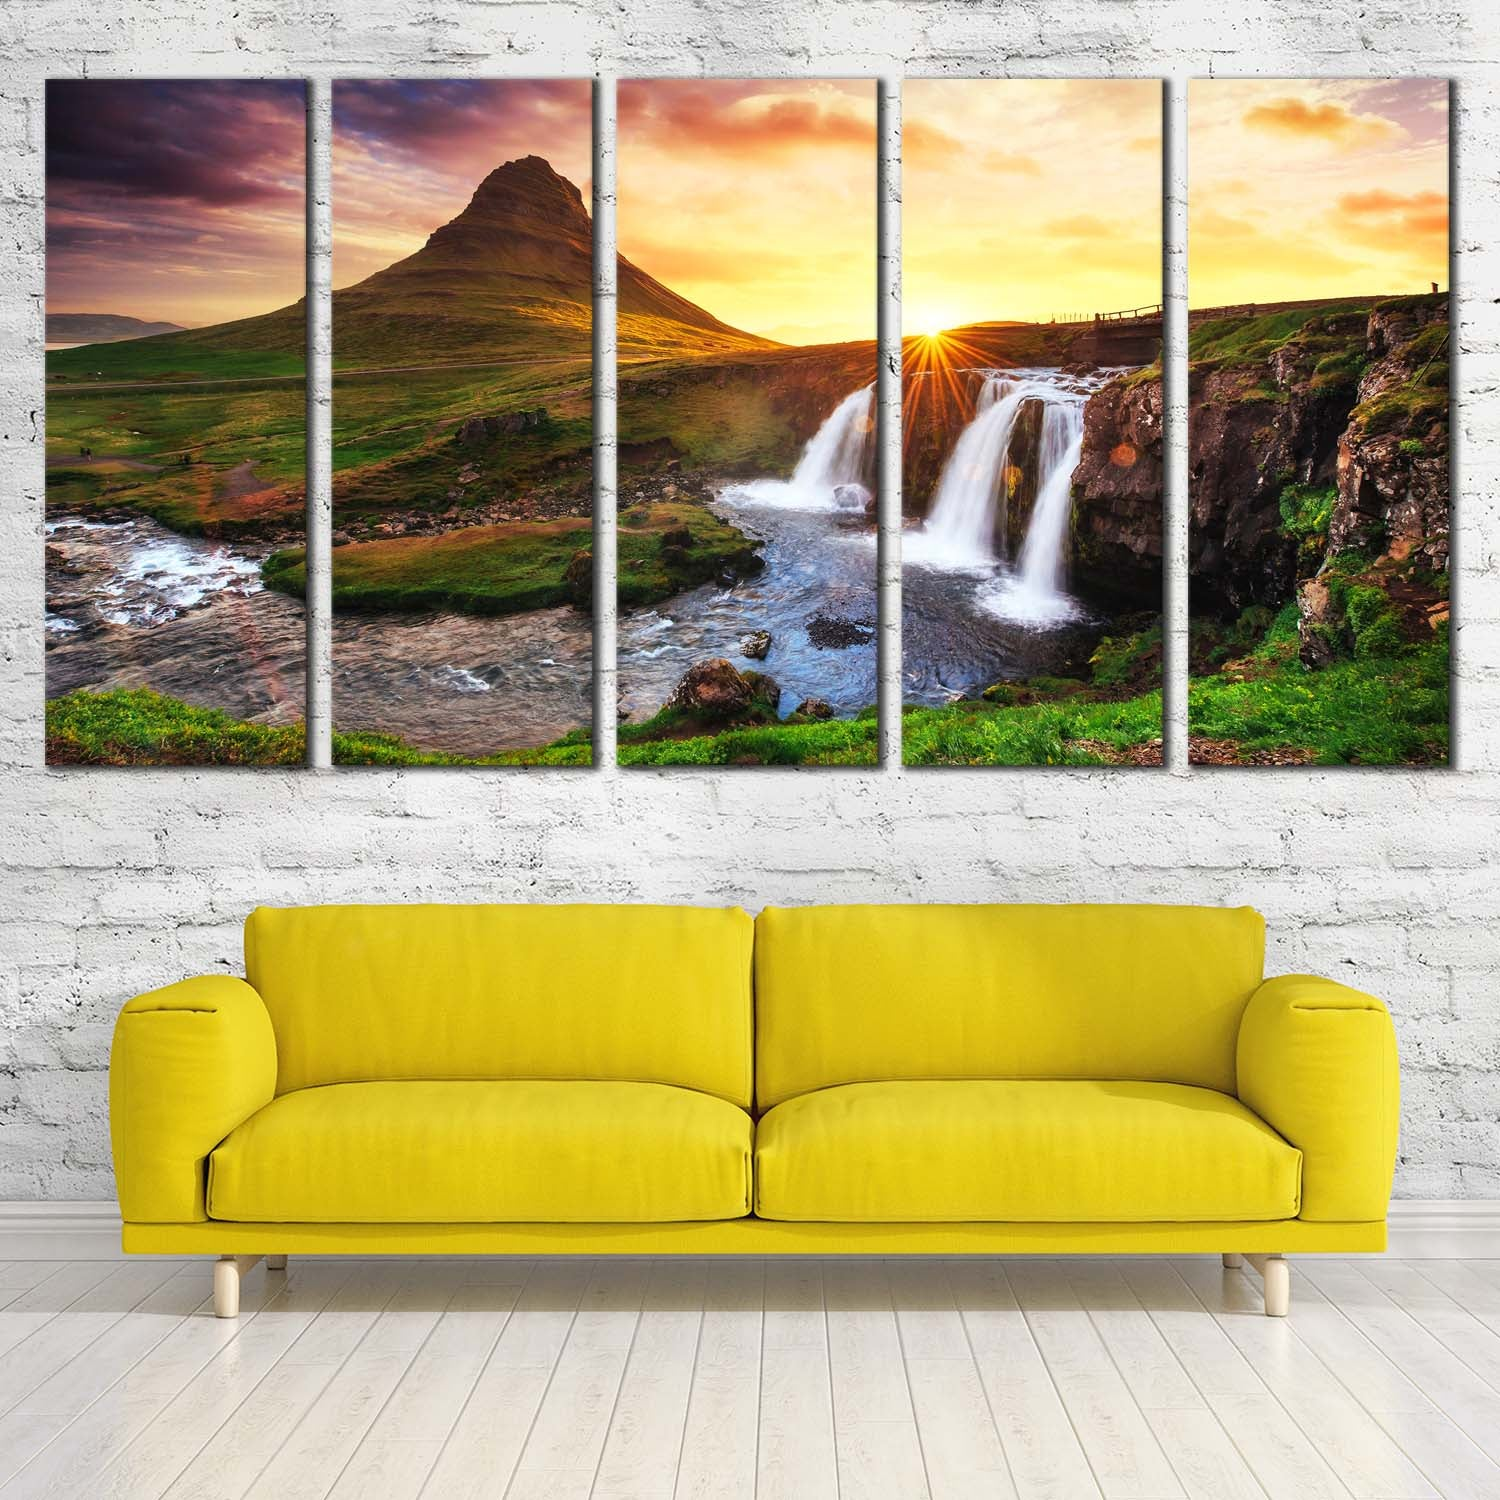 Kirkjufellsfoss Waterfall Canvas Prints with Kirkjufell Mountain in ...